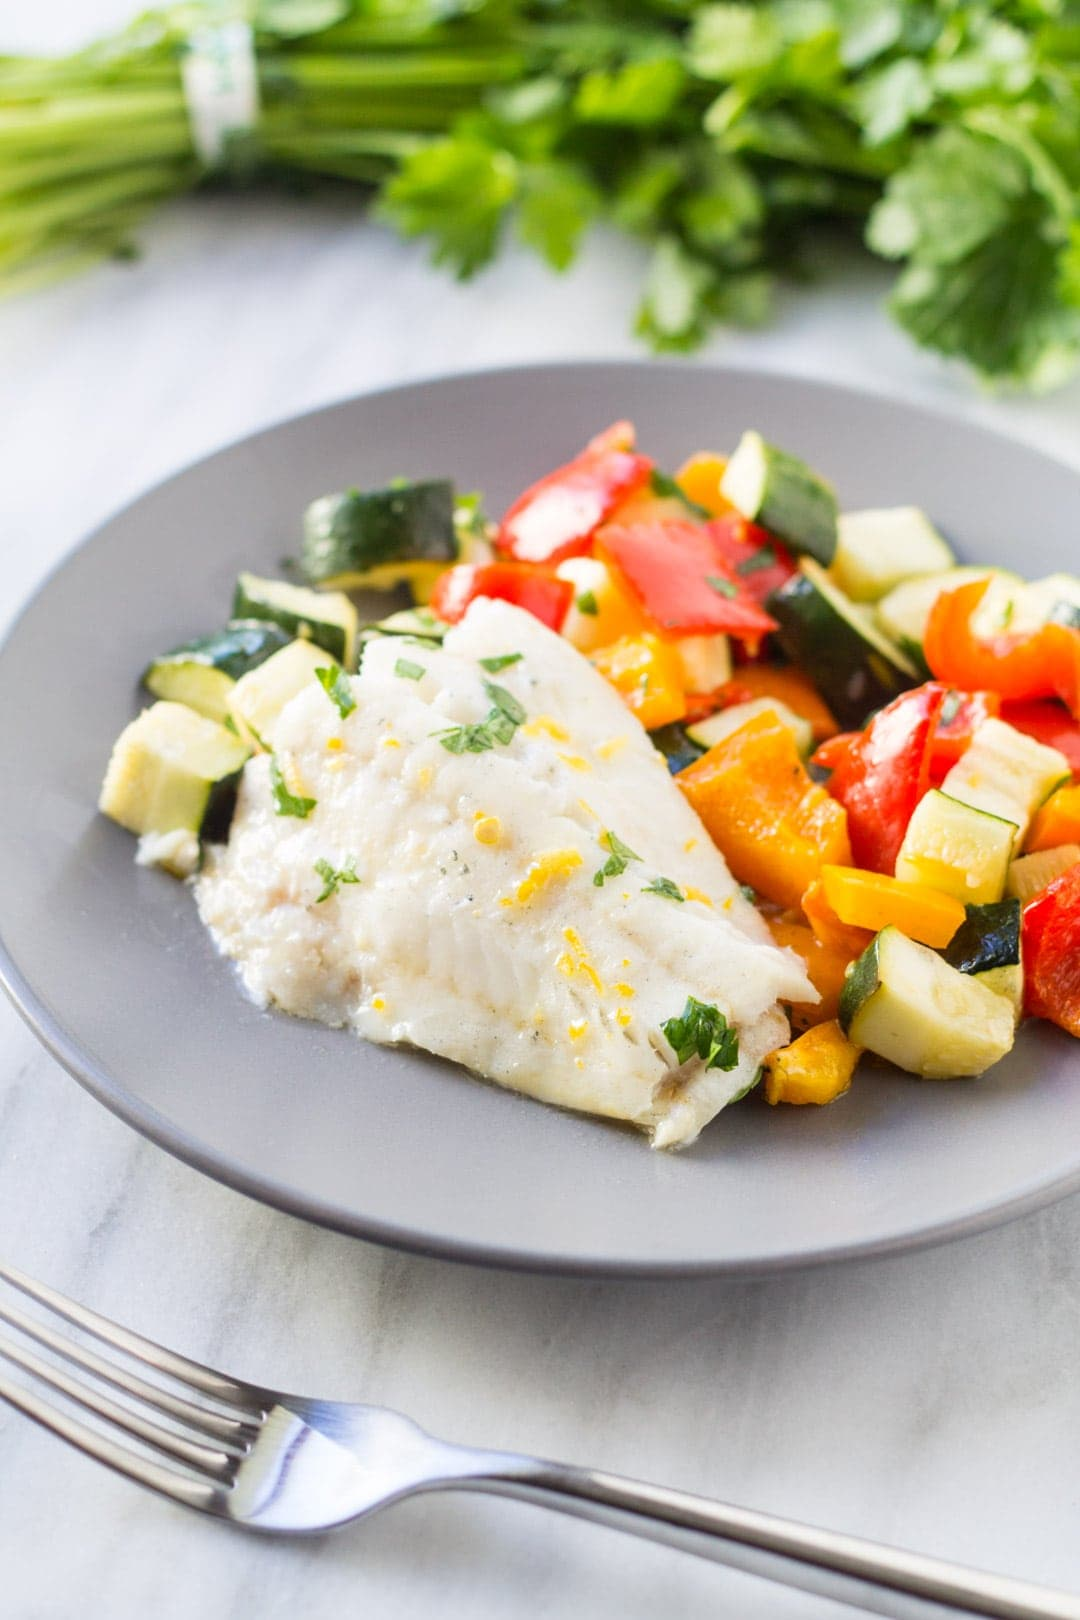 Baked lemon cod, bell peppers, and zucchini on a gray plate.